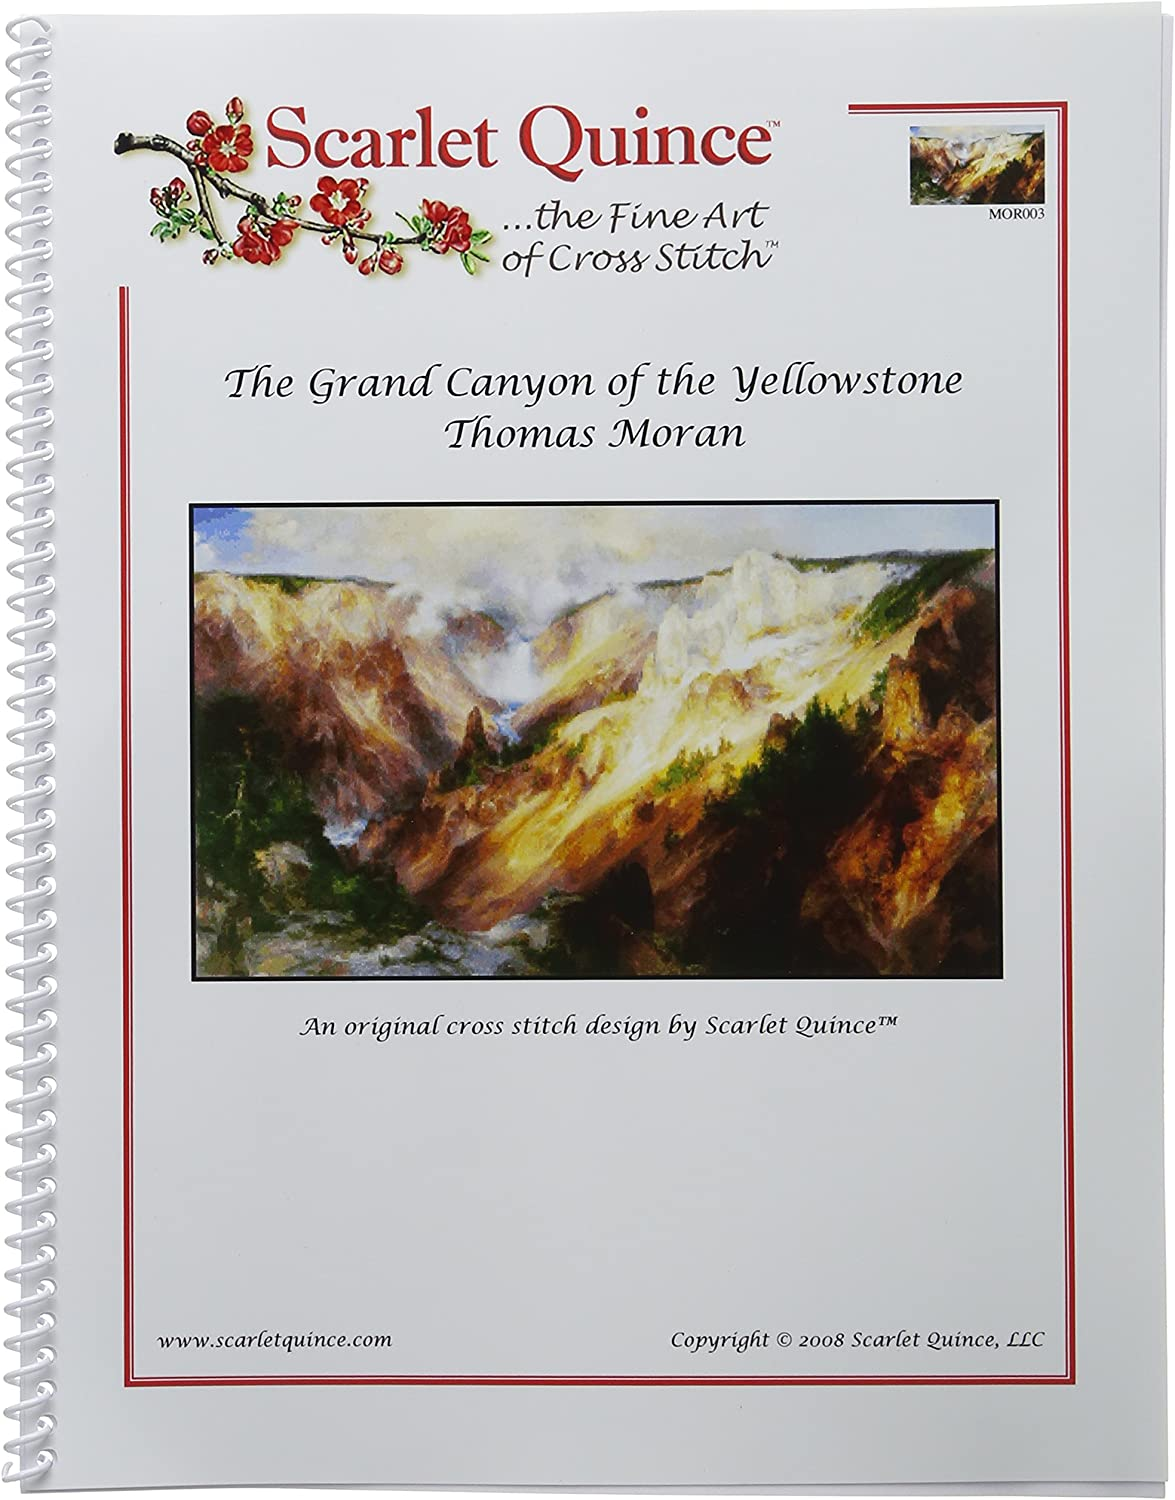 Scarlet Quince MOR003lg The Grand Canyon of the Yellowstone by Thomas Moran Counted Cross Stitch Chart Large Size Symbols